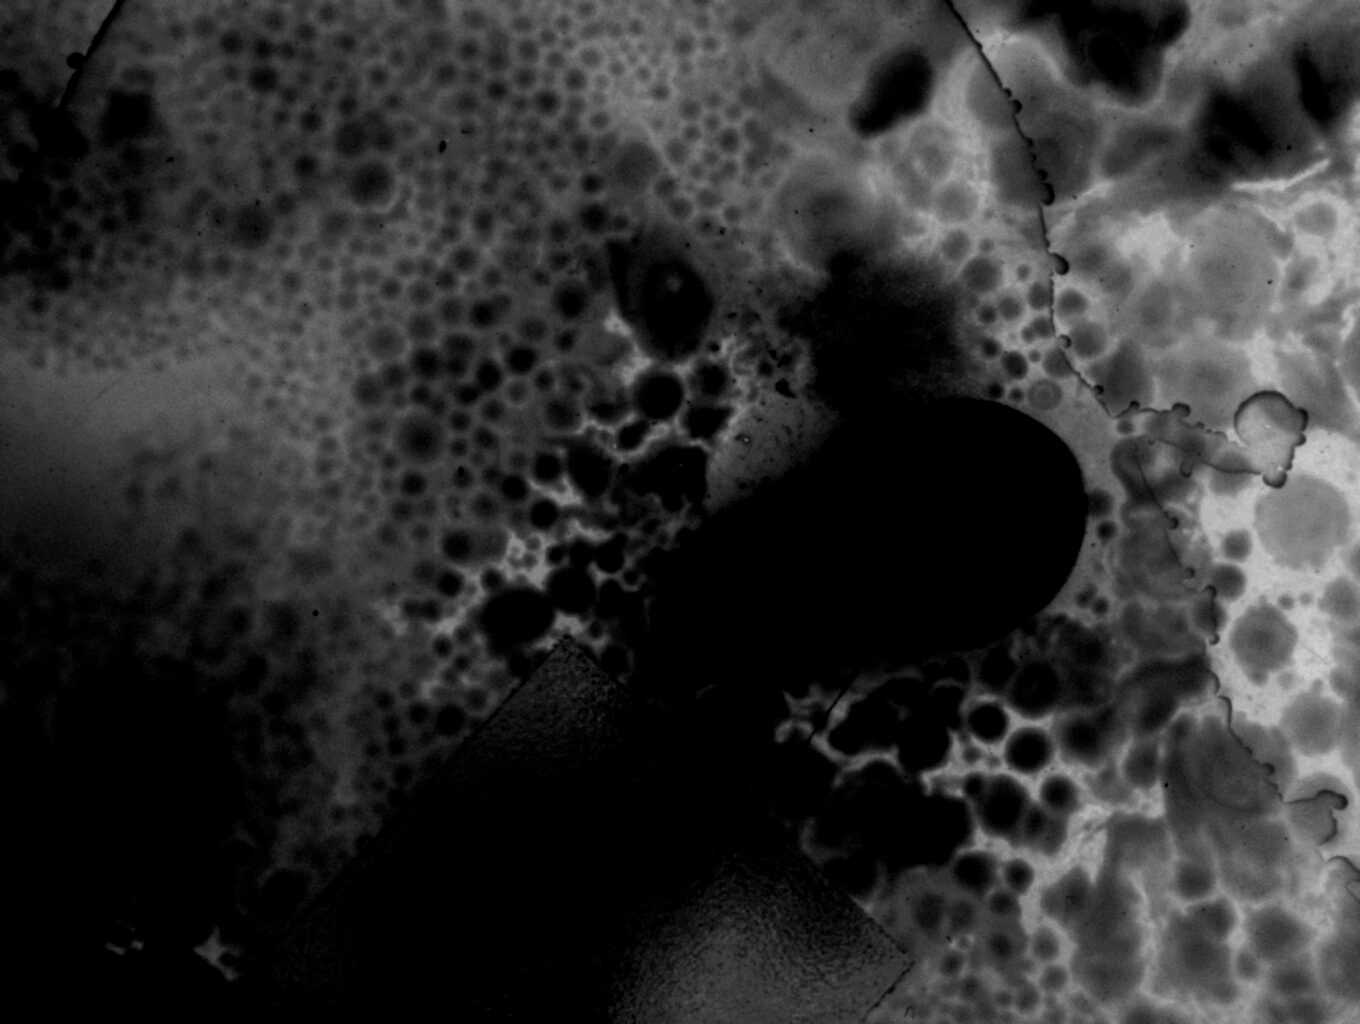 Image taken with Olympus IX51 Inverted Microscope